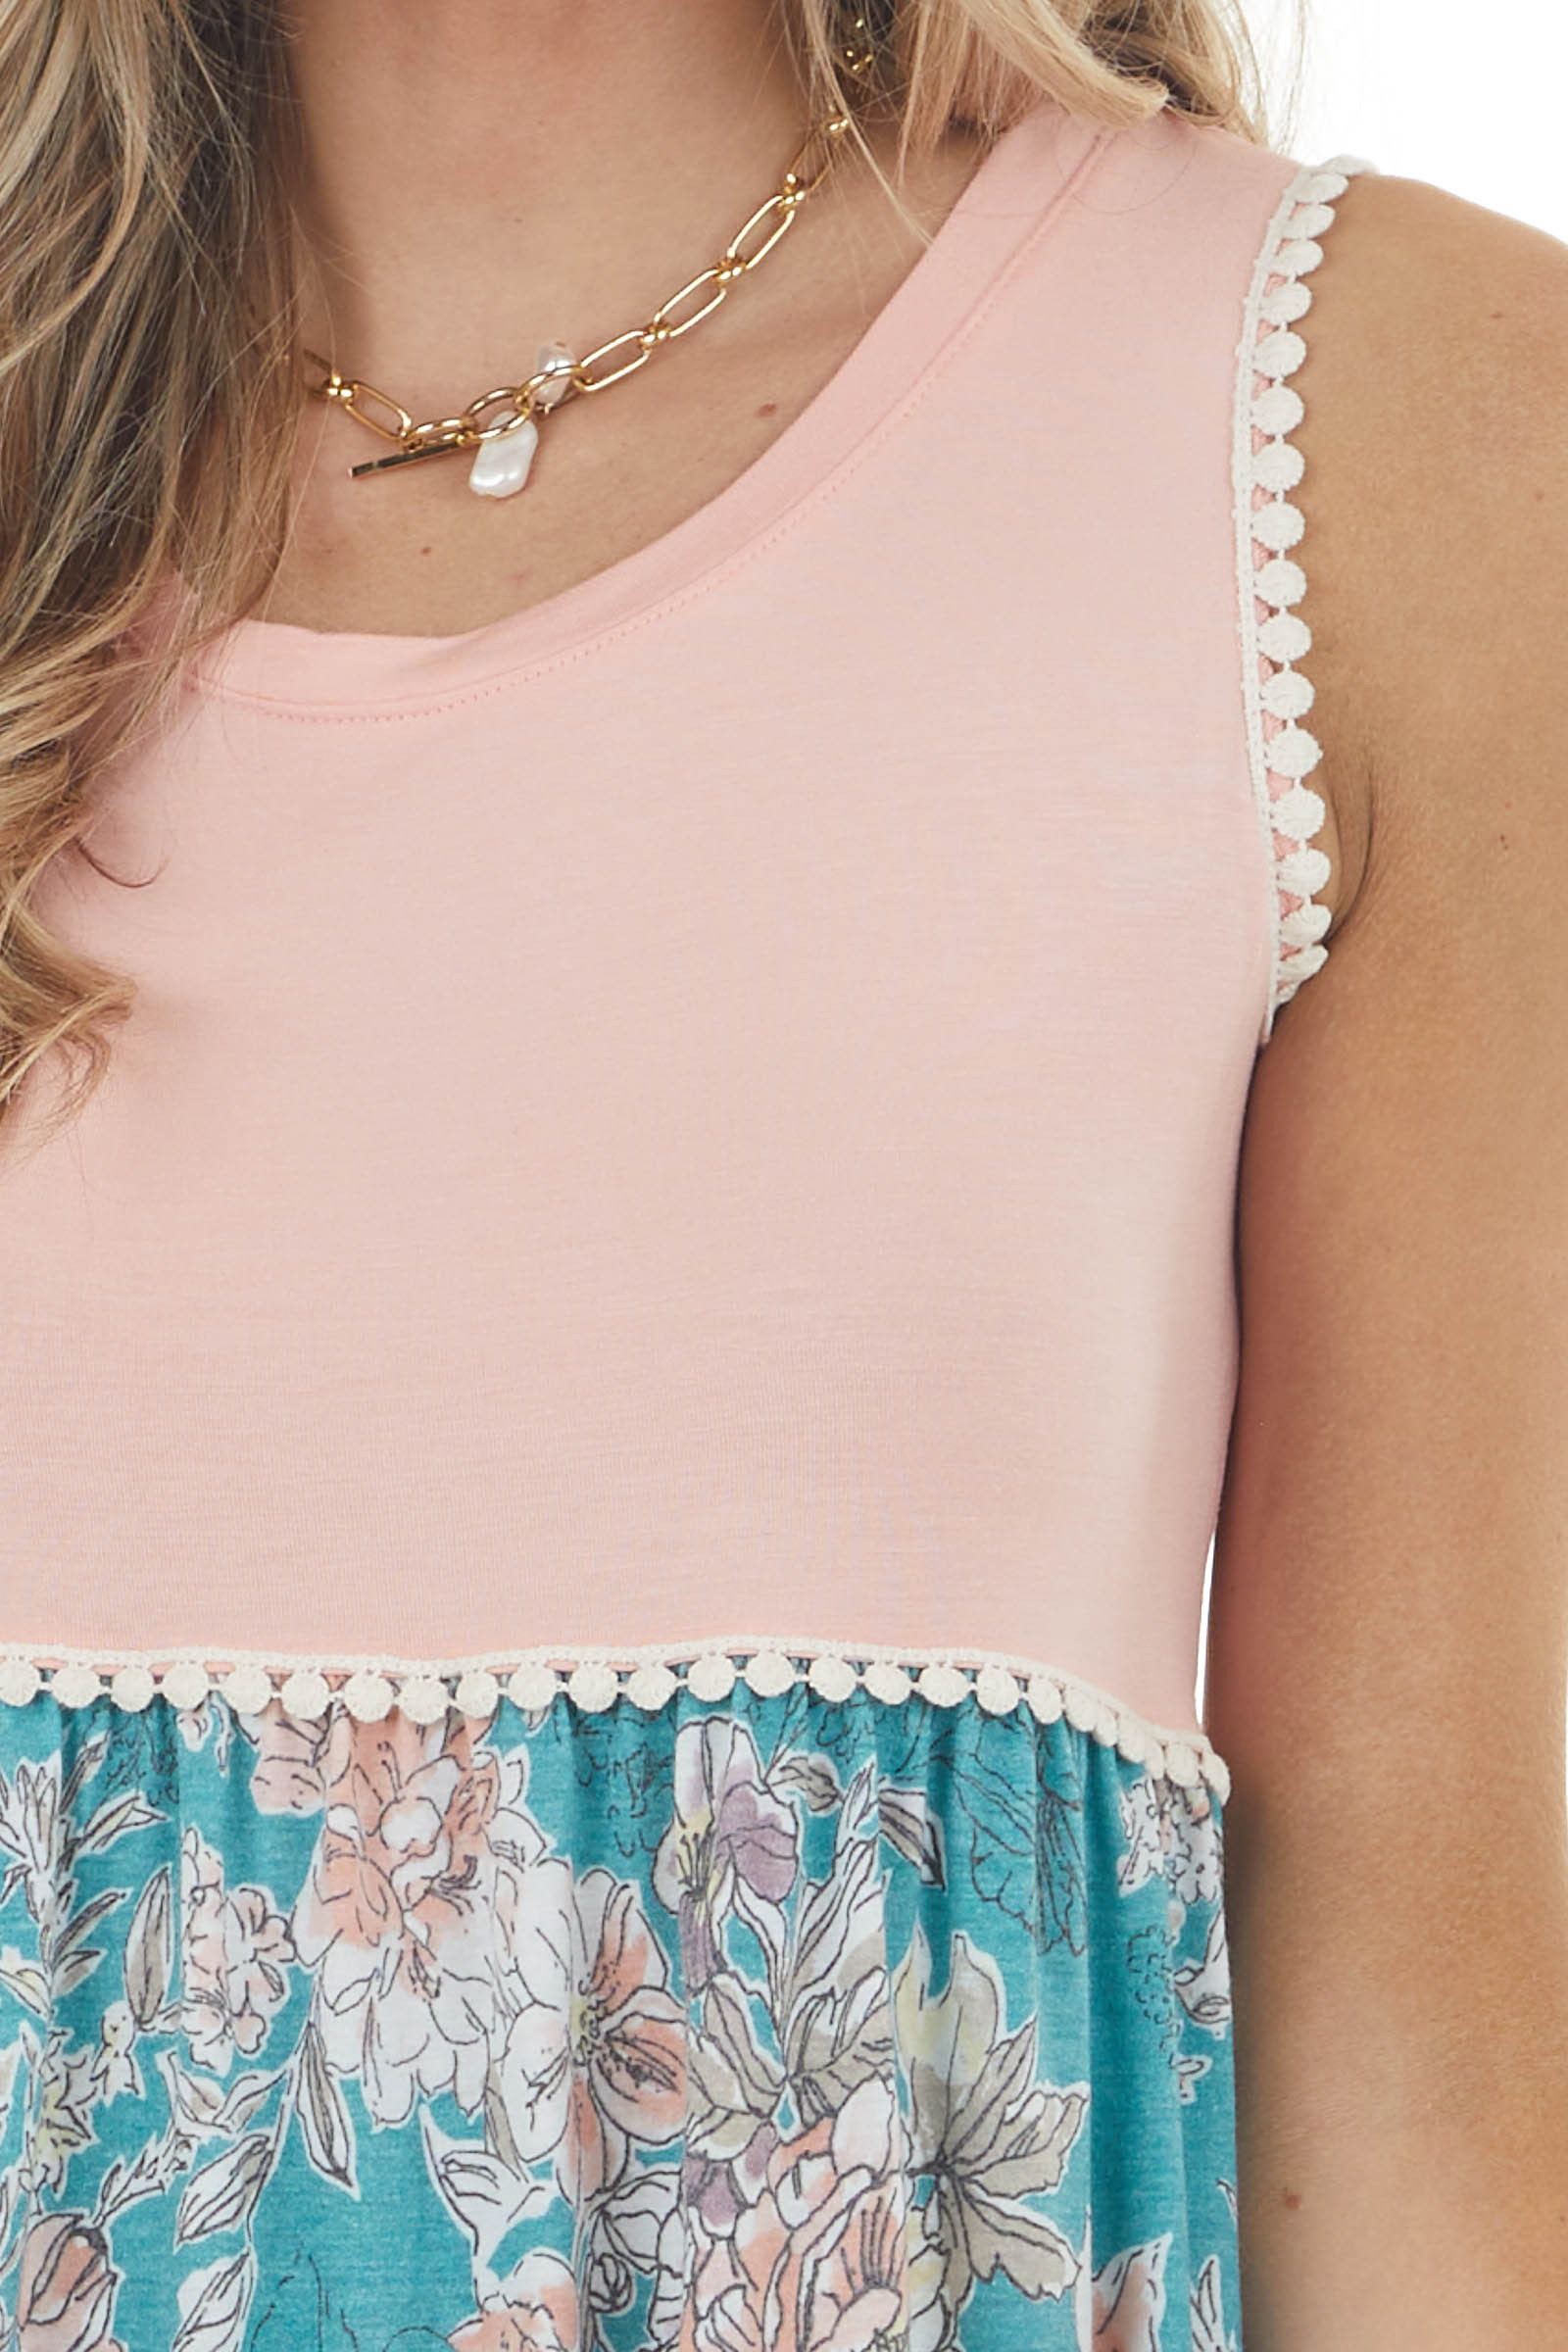 Peach and Floral Print Sleeveless Knit Top with Lace Trim